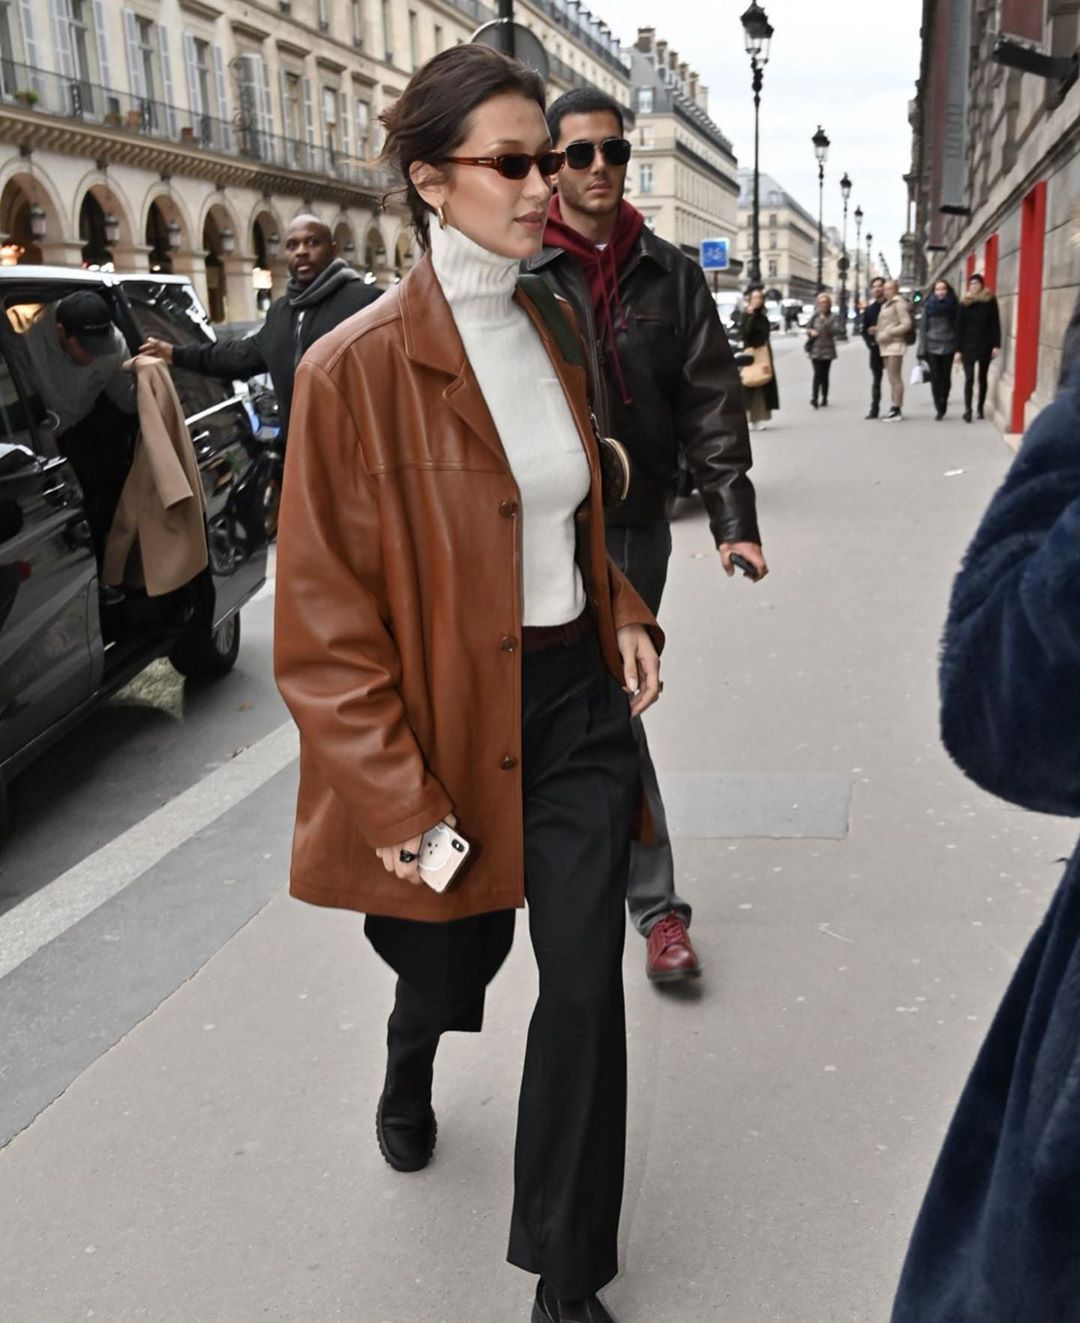 Shop Vintage Collection On Instagram Bellahadid In Svc Oversized Leather Jacke Brown Leather Jacket Outfit Leather Jacket Outfit Fall Leather Jacket Outfits [ jpg ]